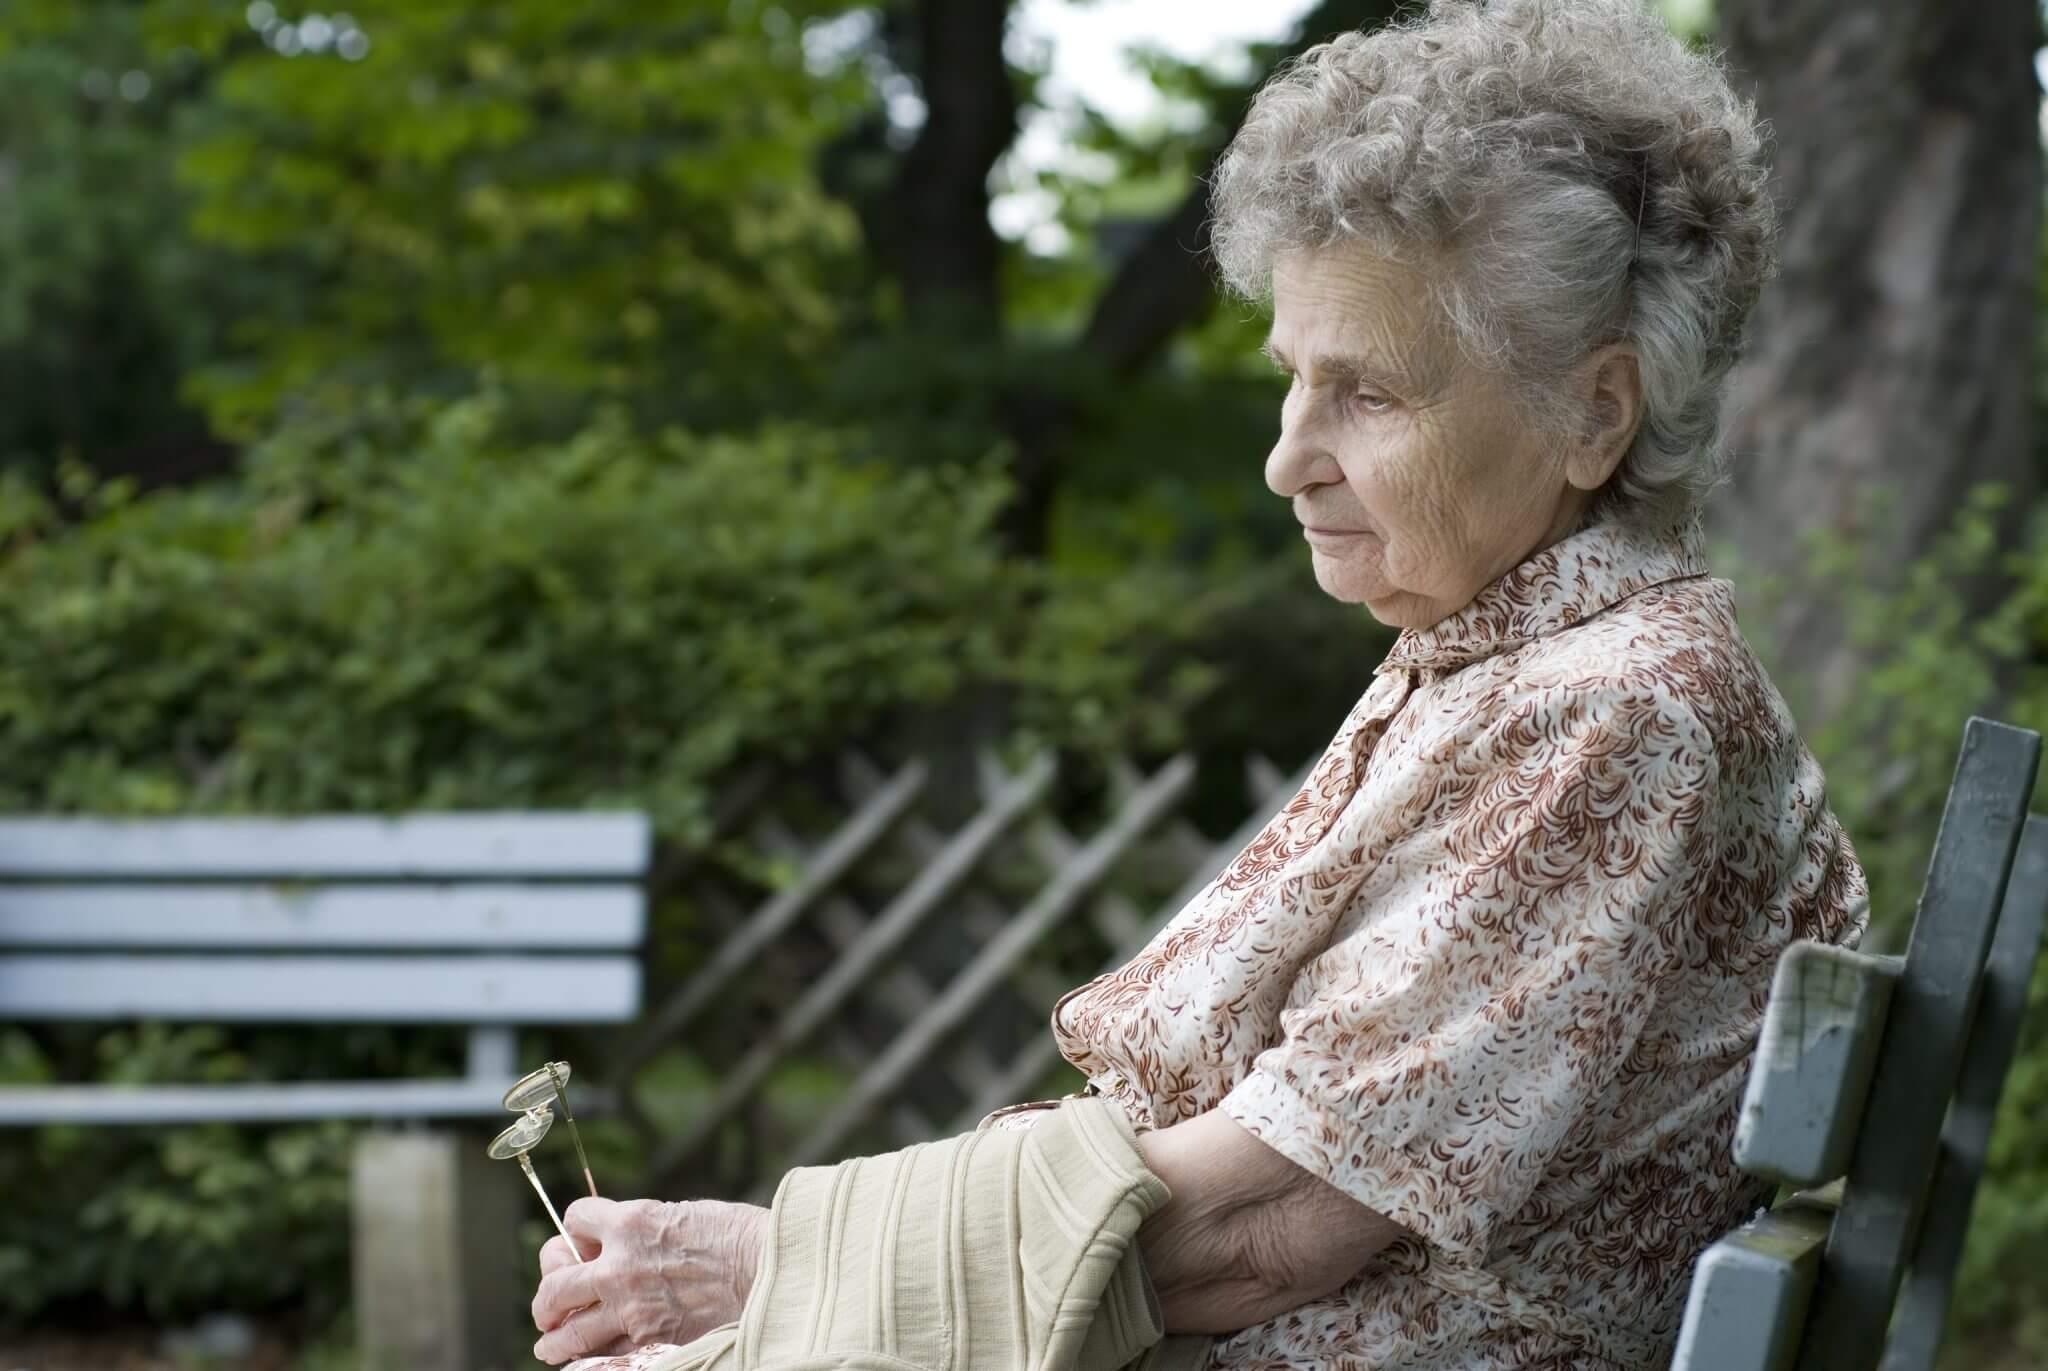 What If A Family Caregiver Isn't an Option?